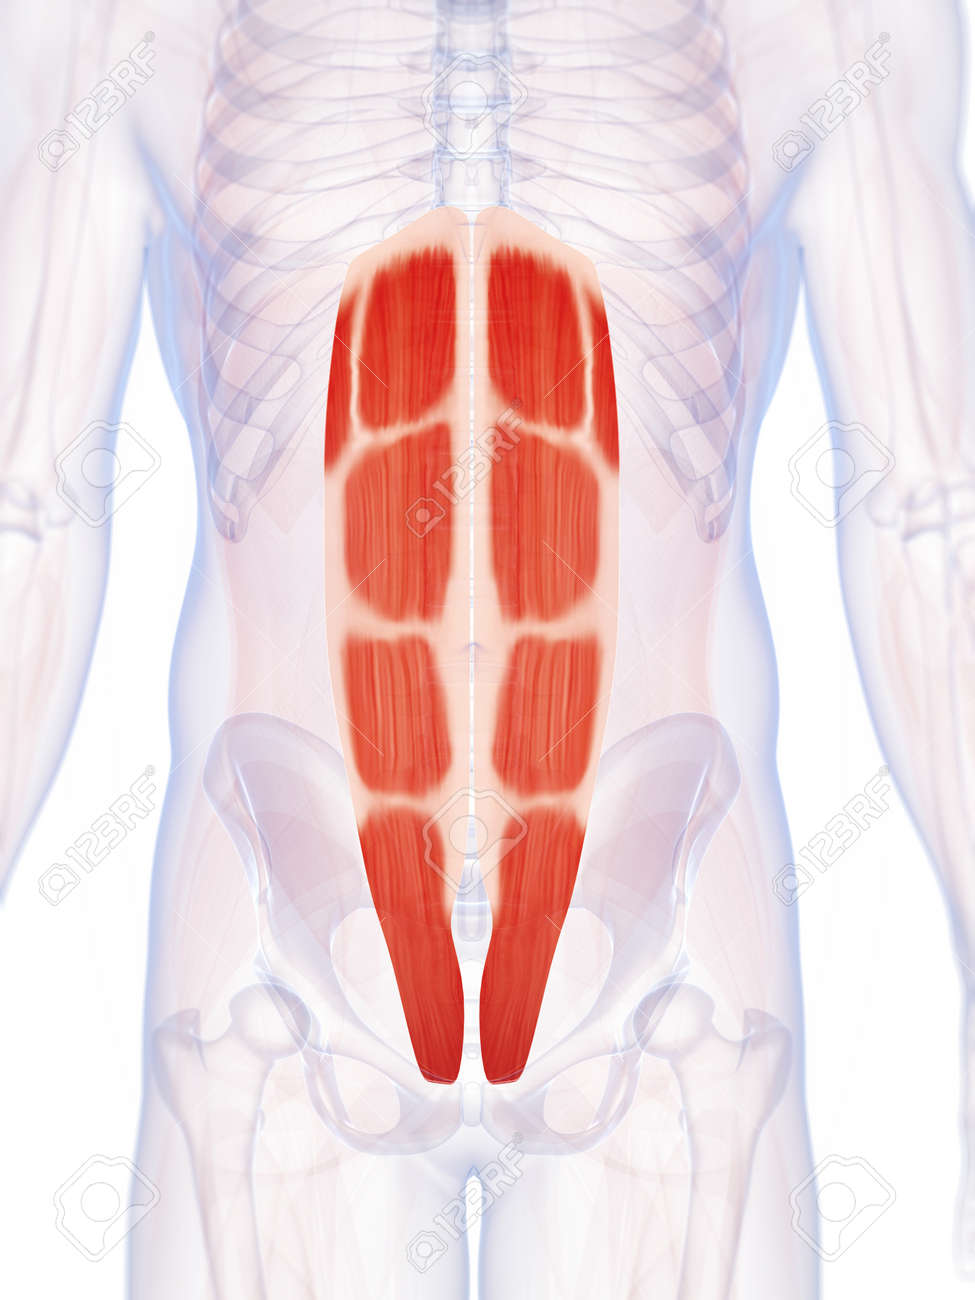 3d Rendered Illustration Of The Abdominal Muscles Stock Photo ...